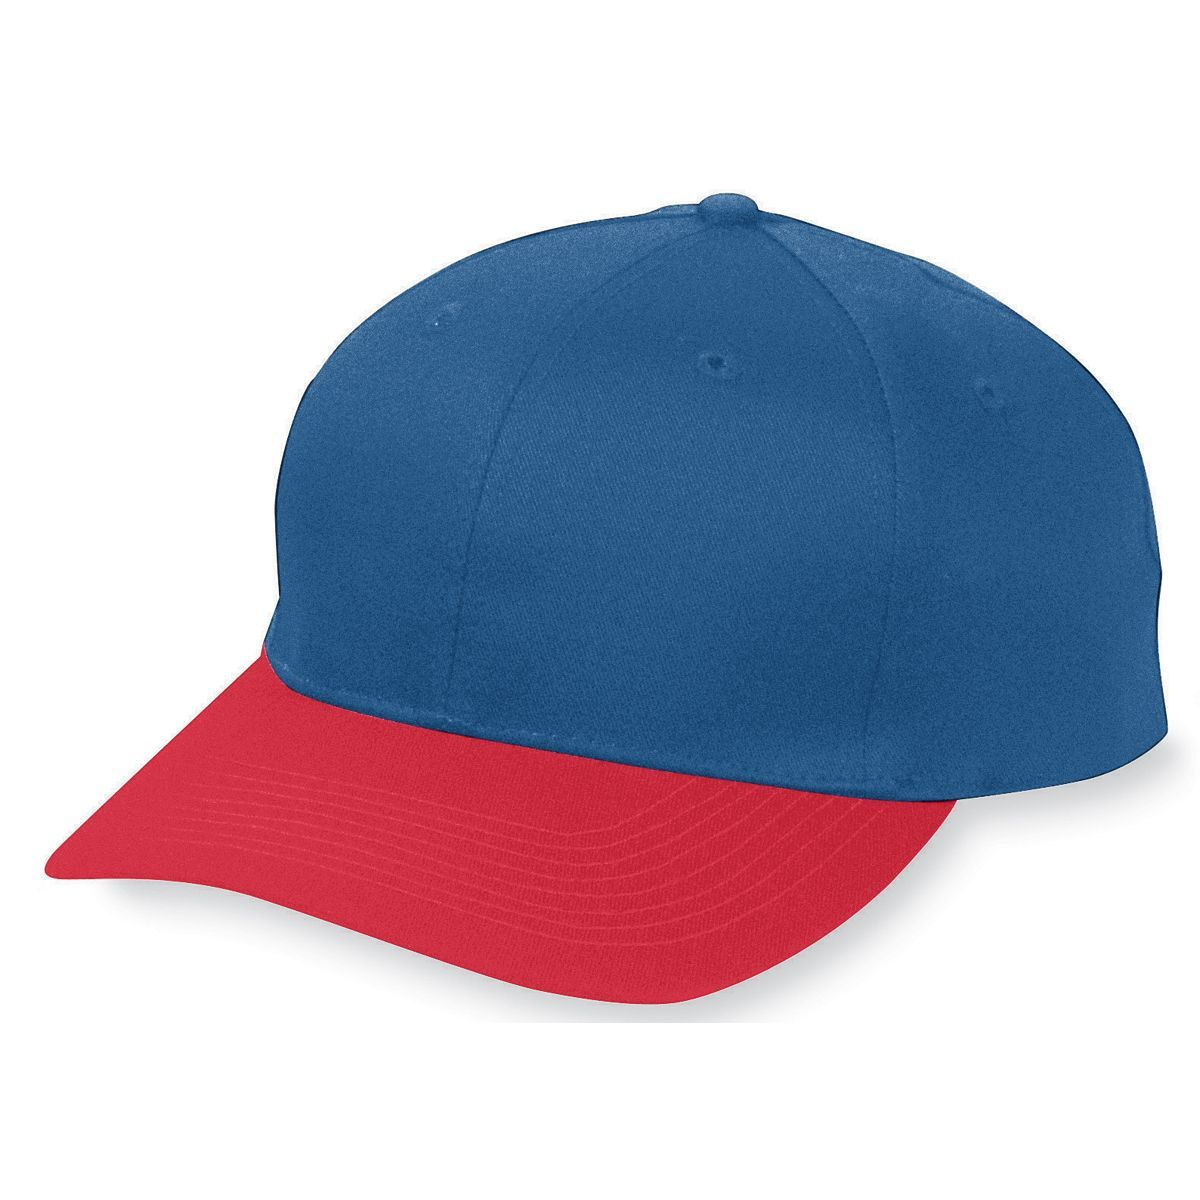 Six-Panel Cotton Twill Low-Profile Cap - NAVY/RED